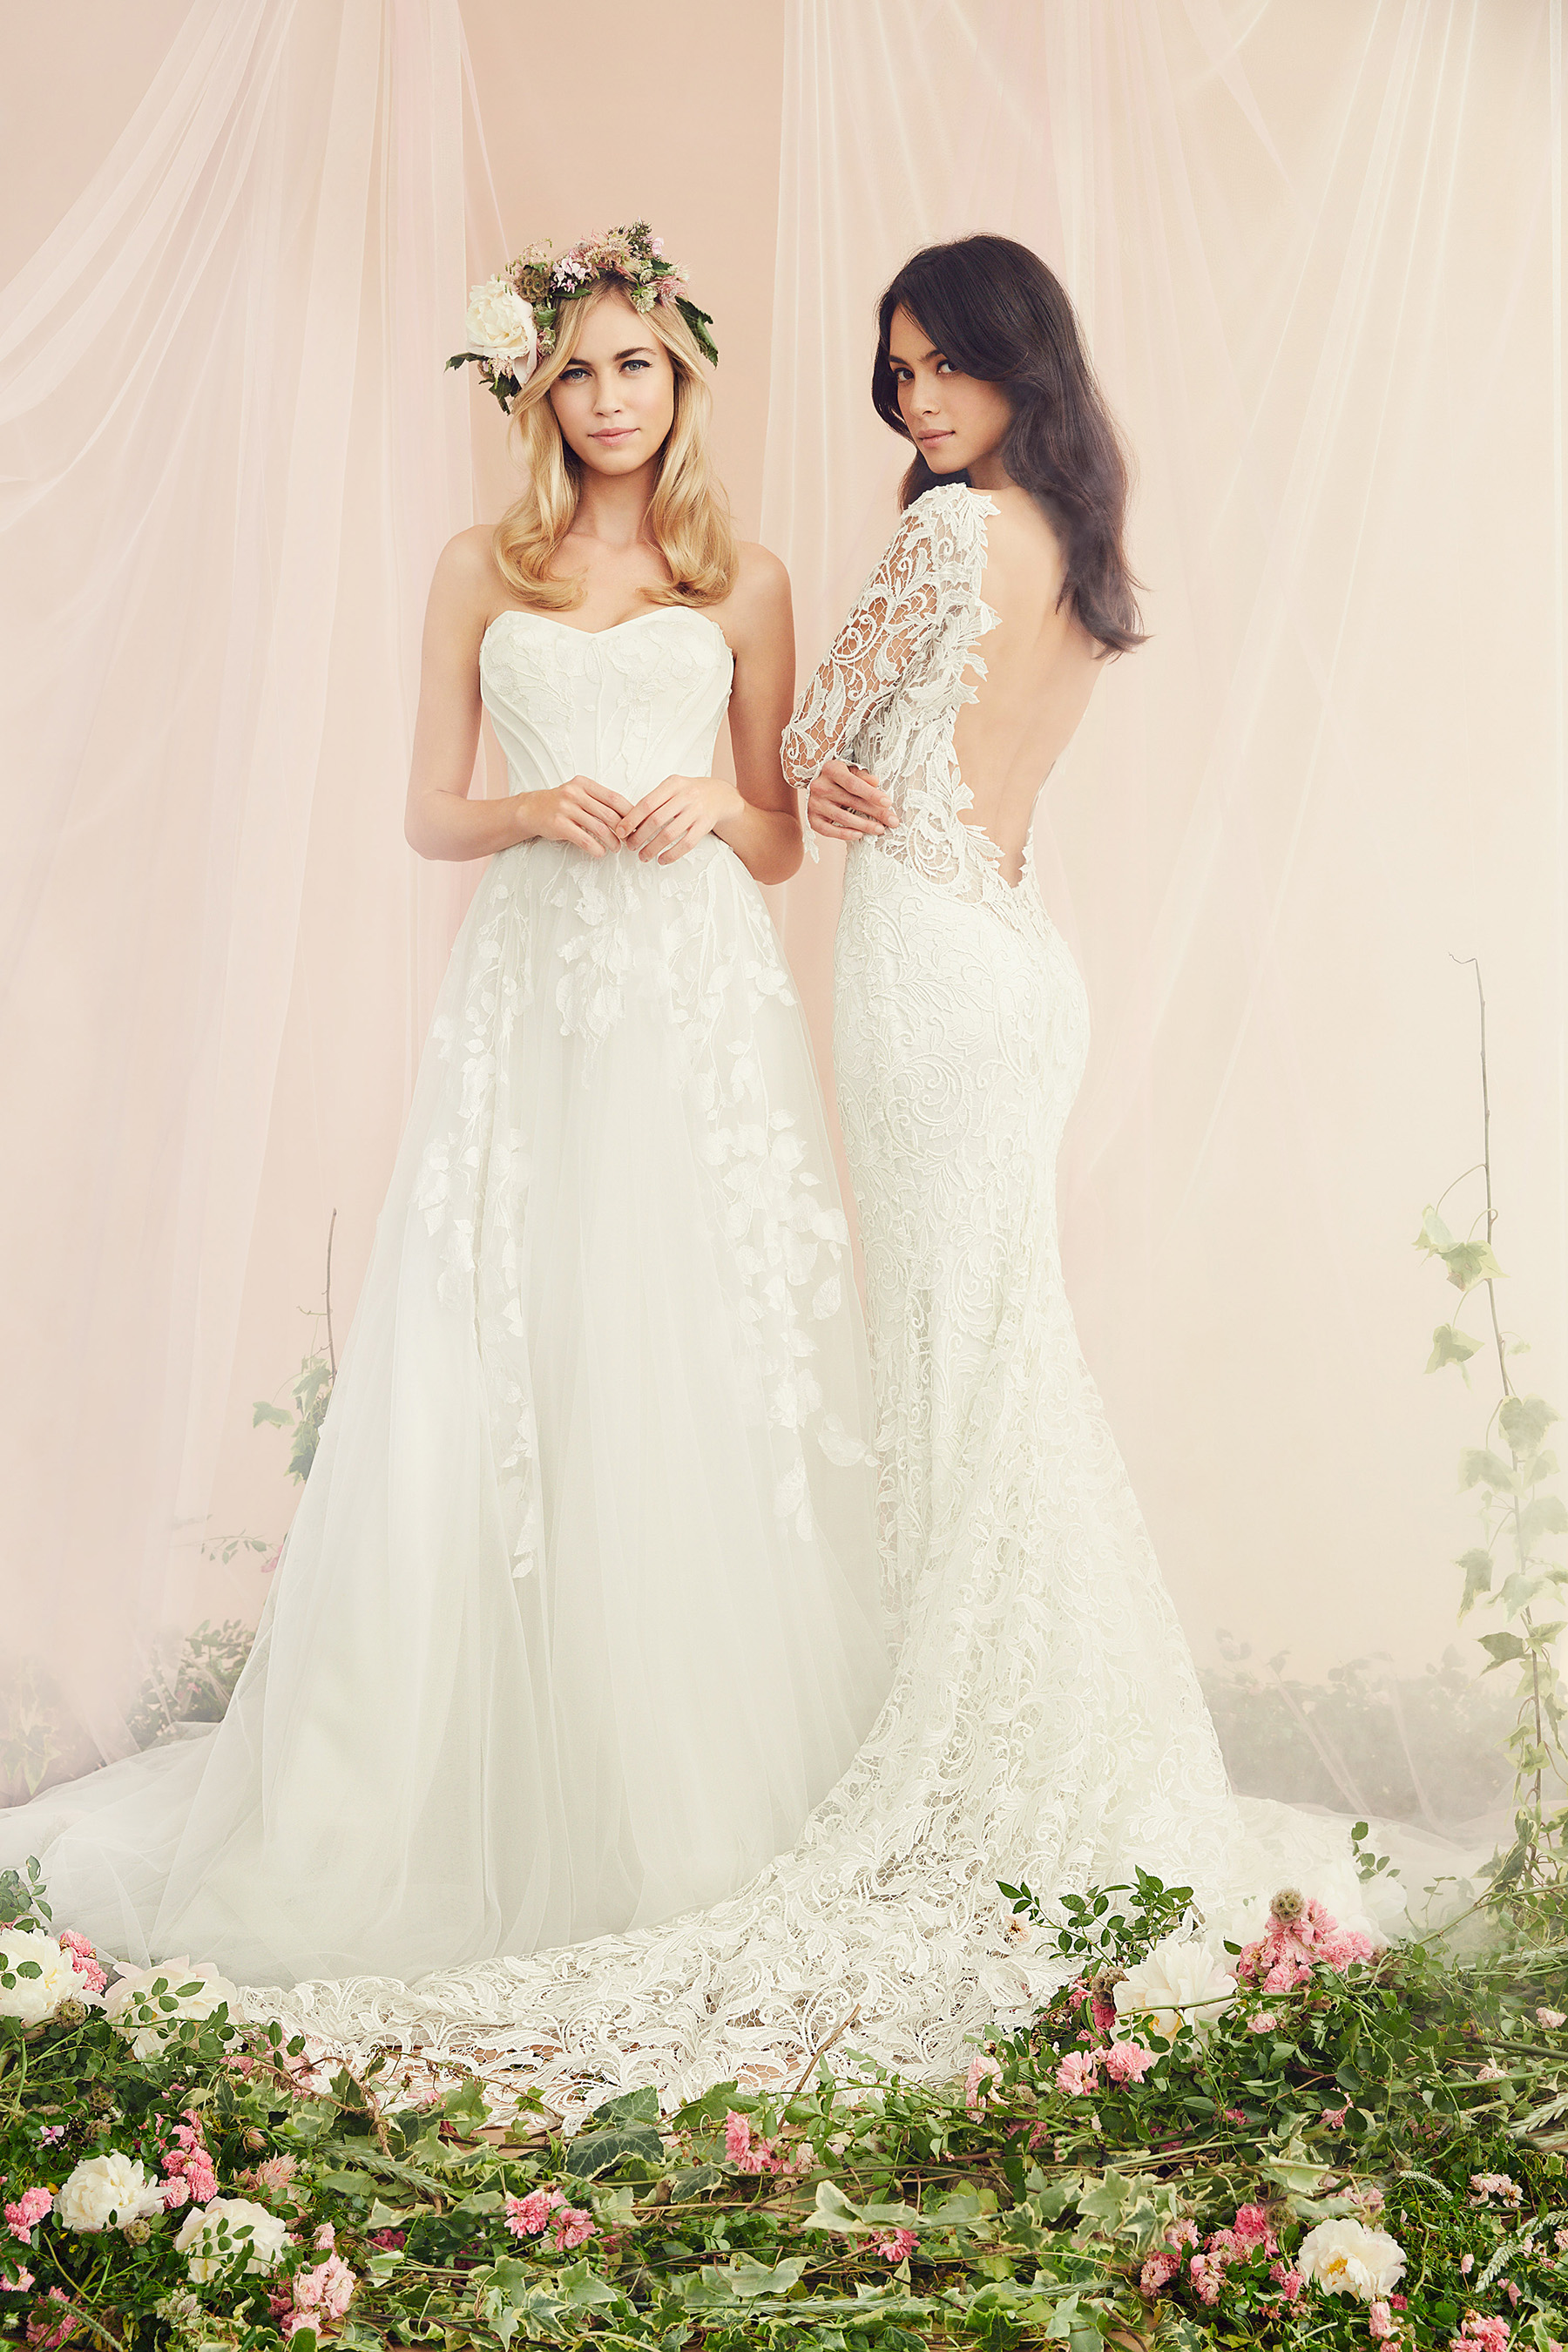 The kleinfeld proposal marrying the generations news for Kleinfeld wedding dress designers